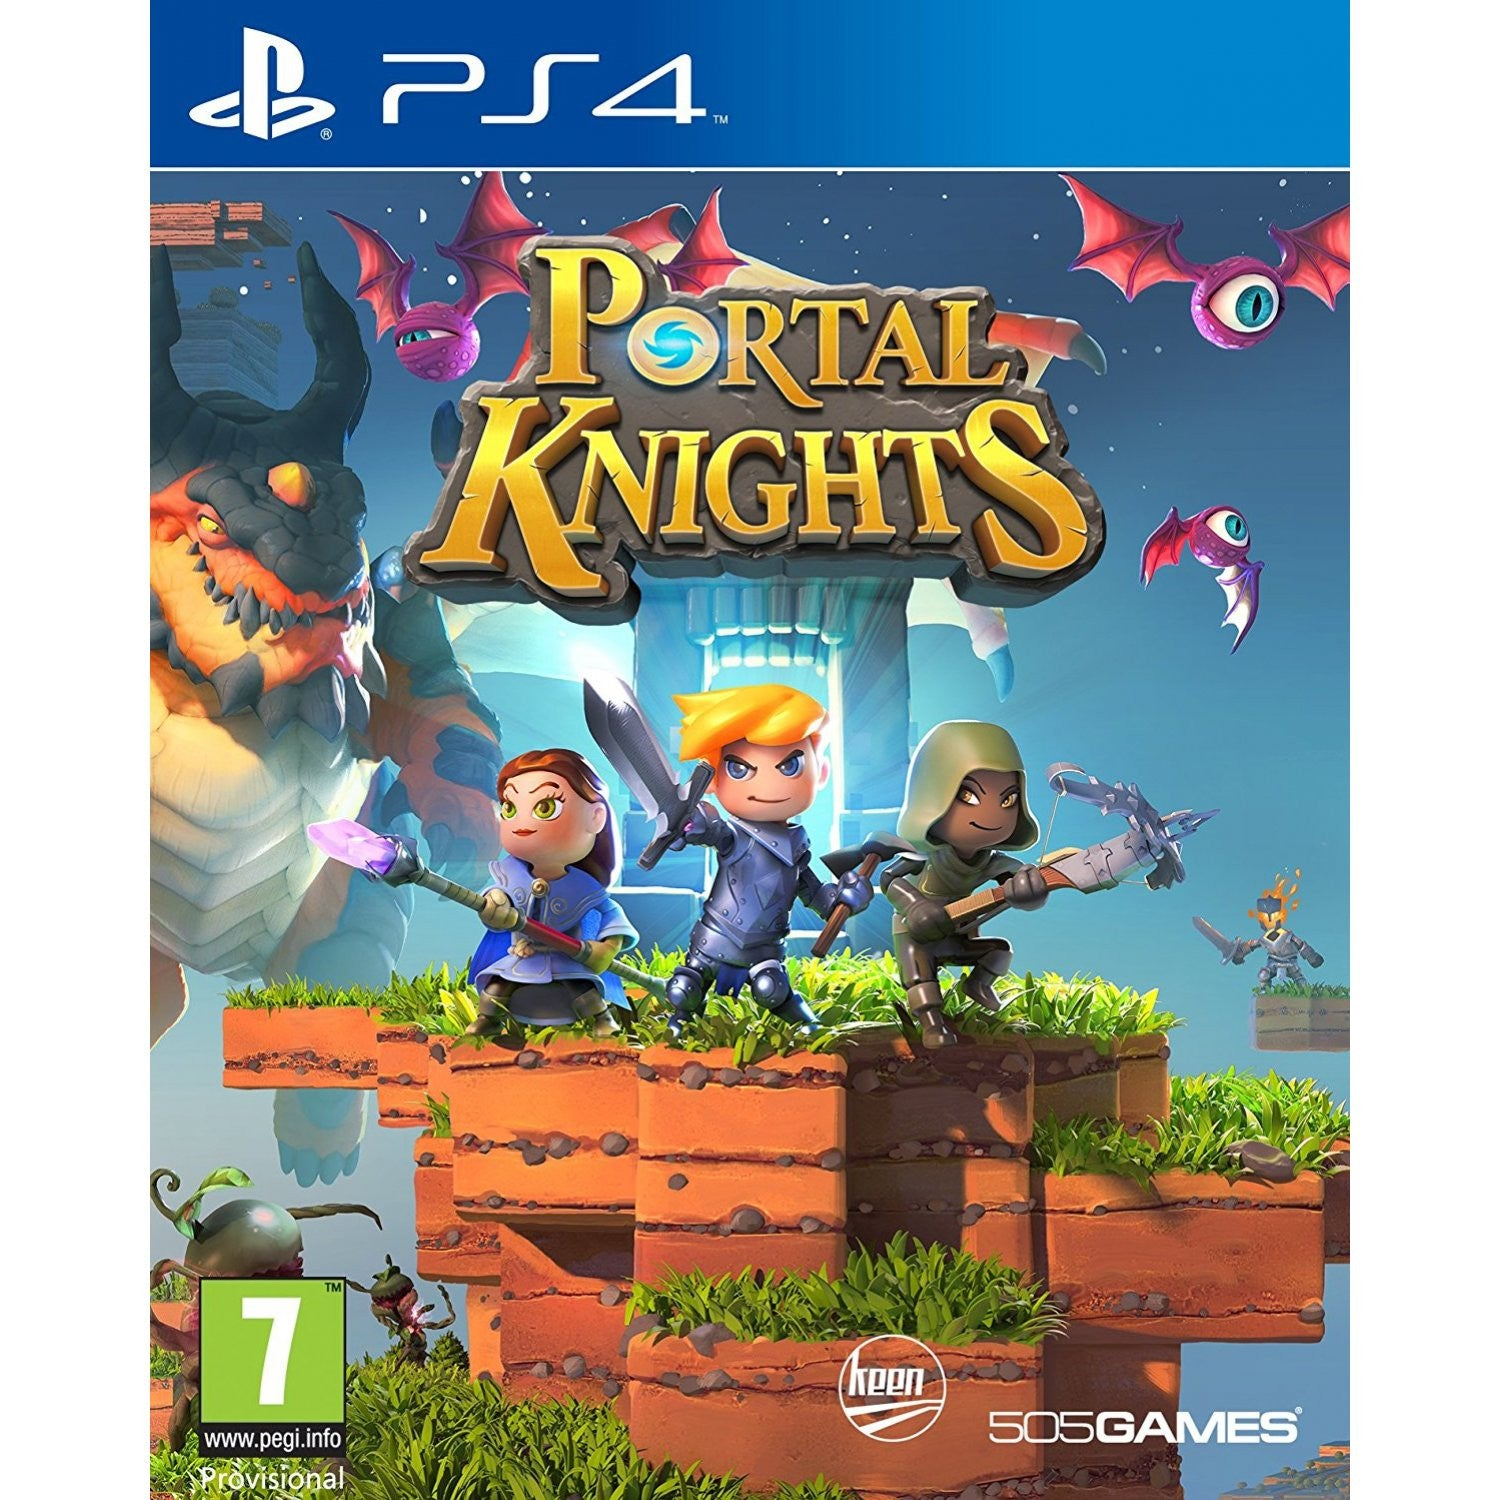 Category Game Tagged Ps4 Page 9 Nioh Poster Region 3 English Portal Knights